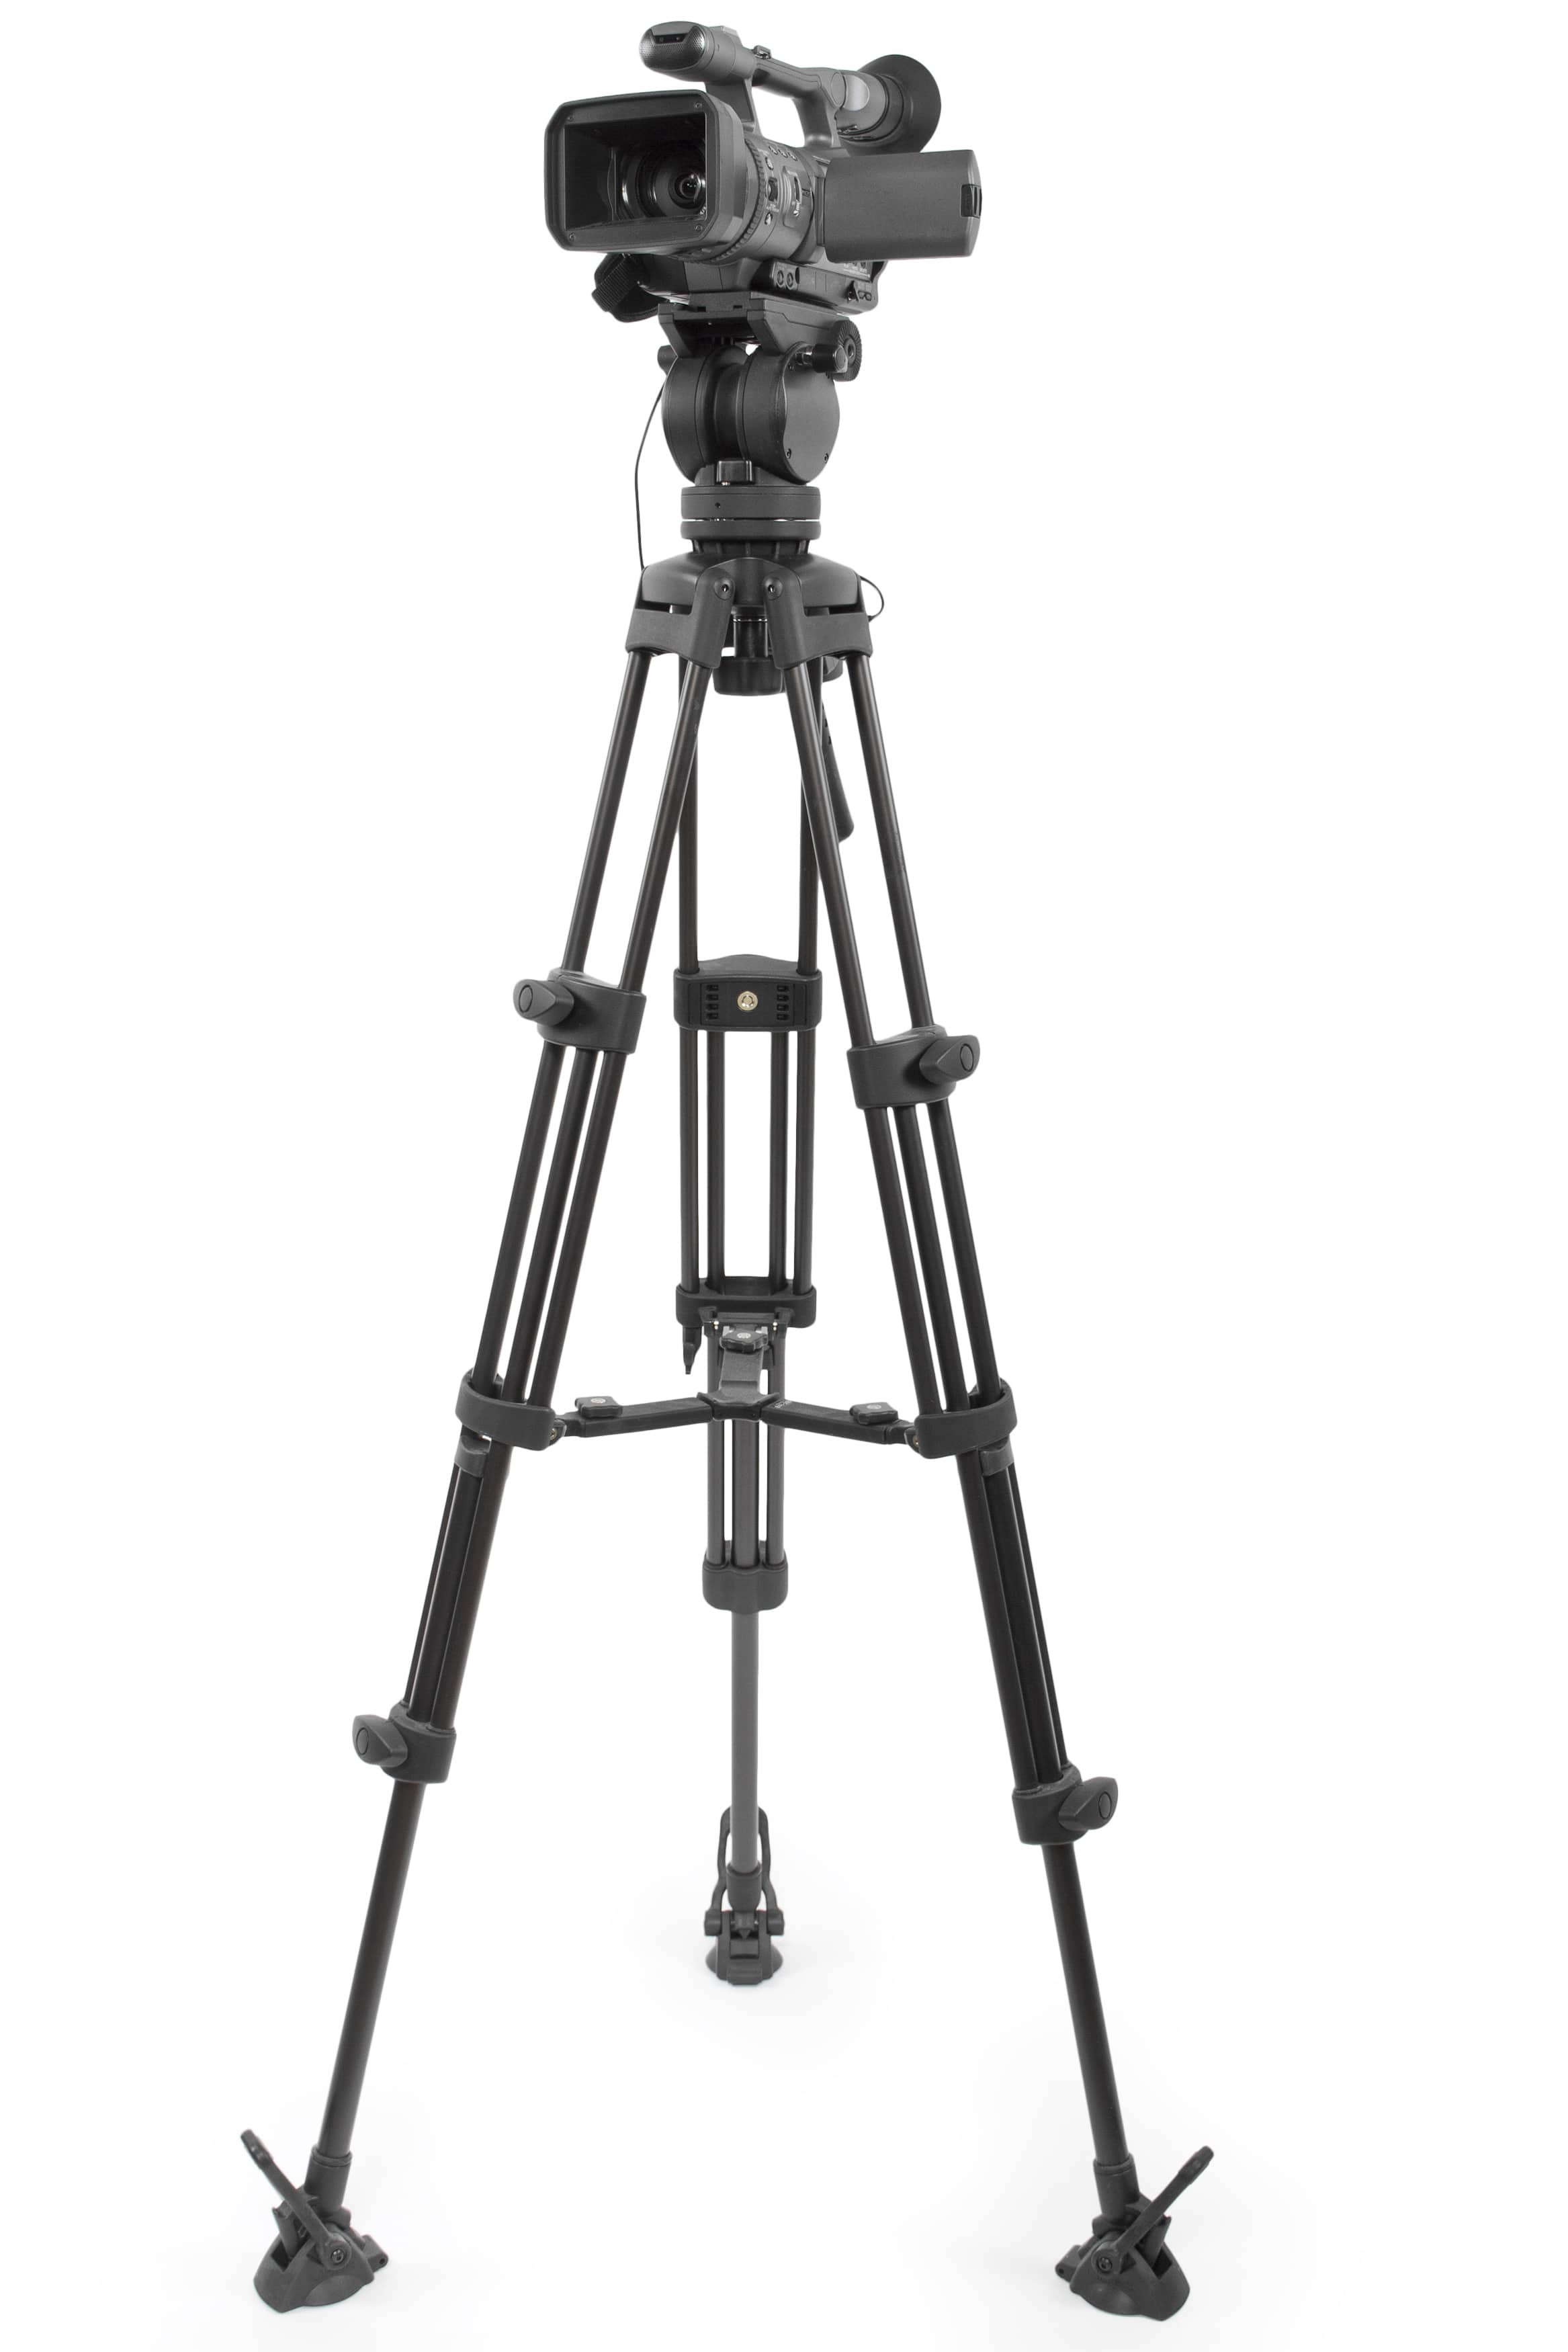 Live Streaming Equipment Which Tripod to Use for Online Video - video tripod